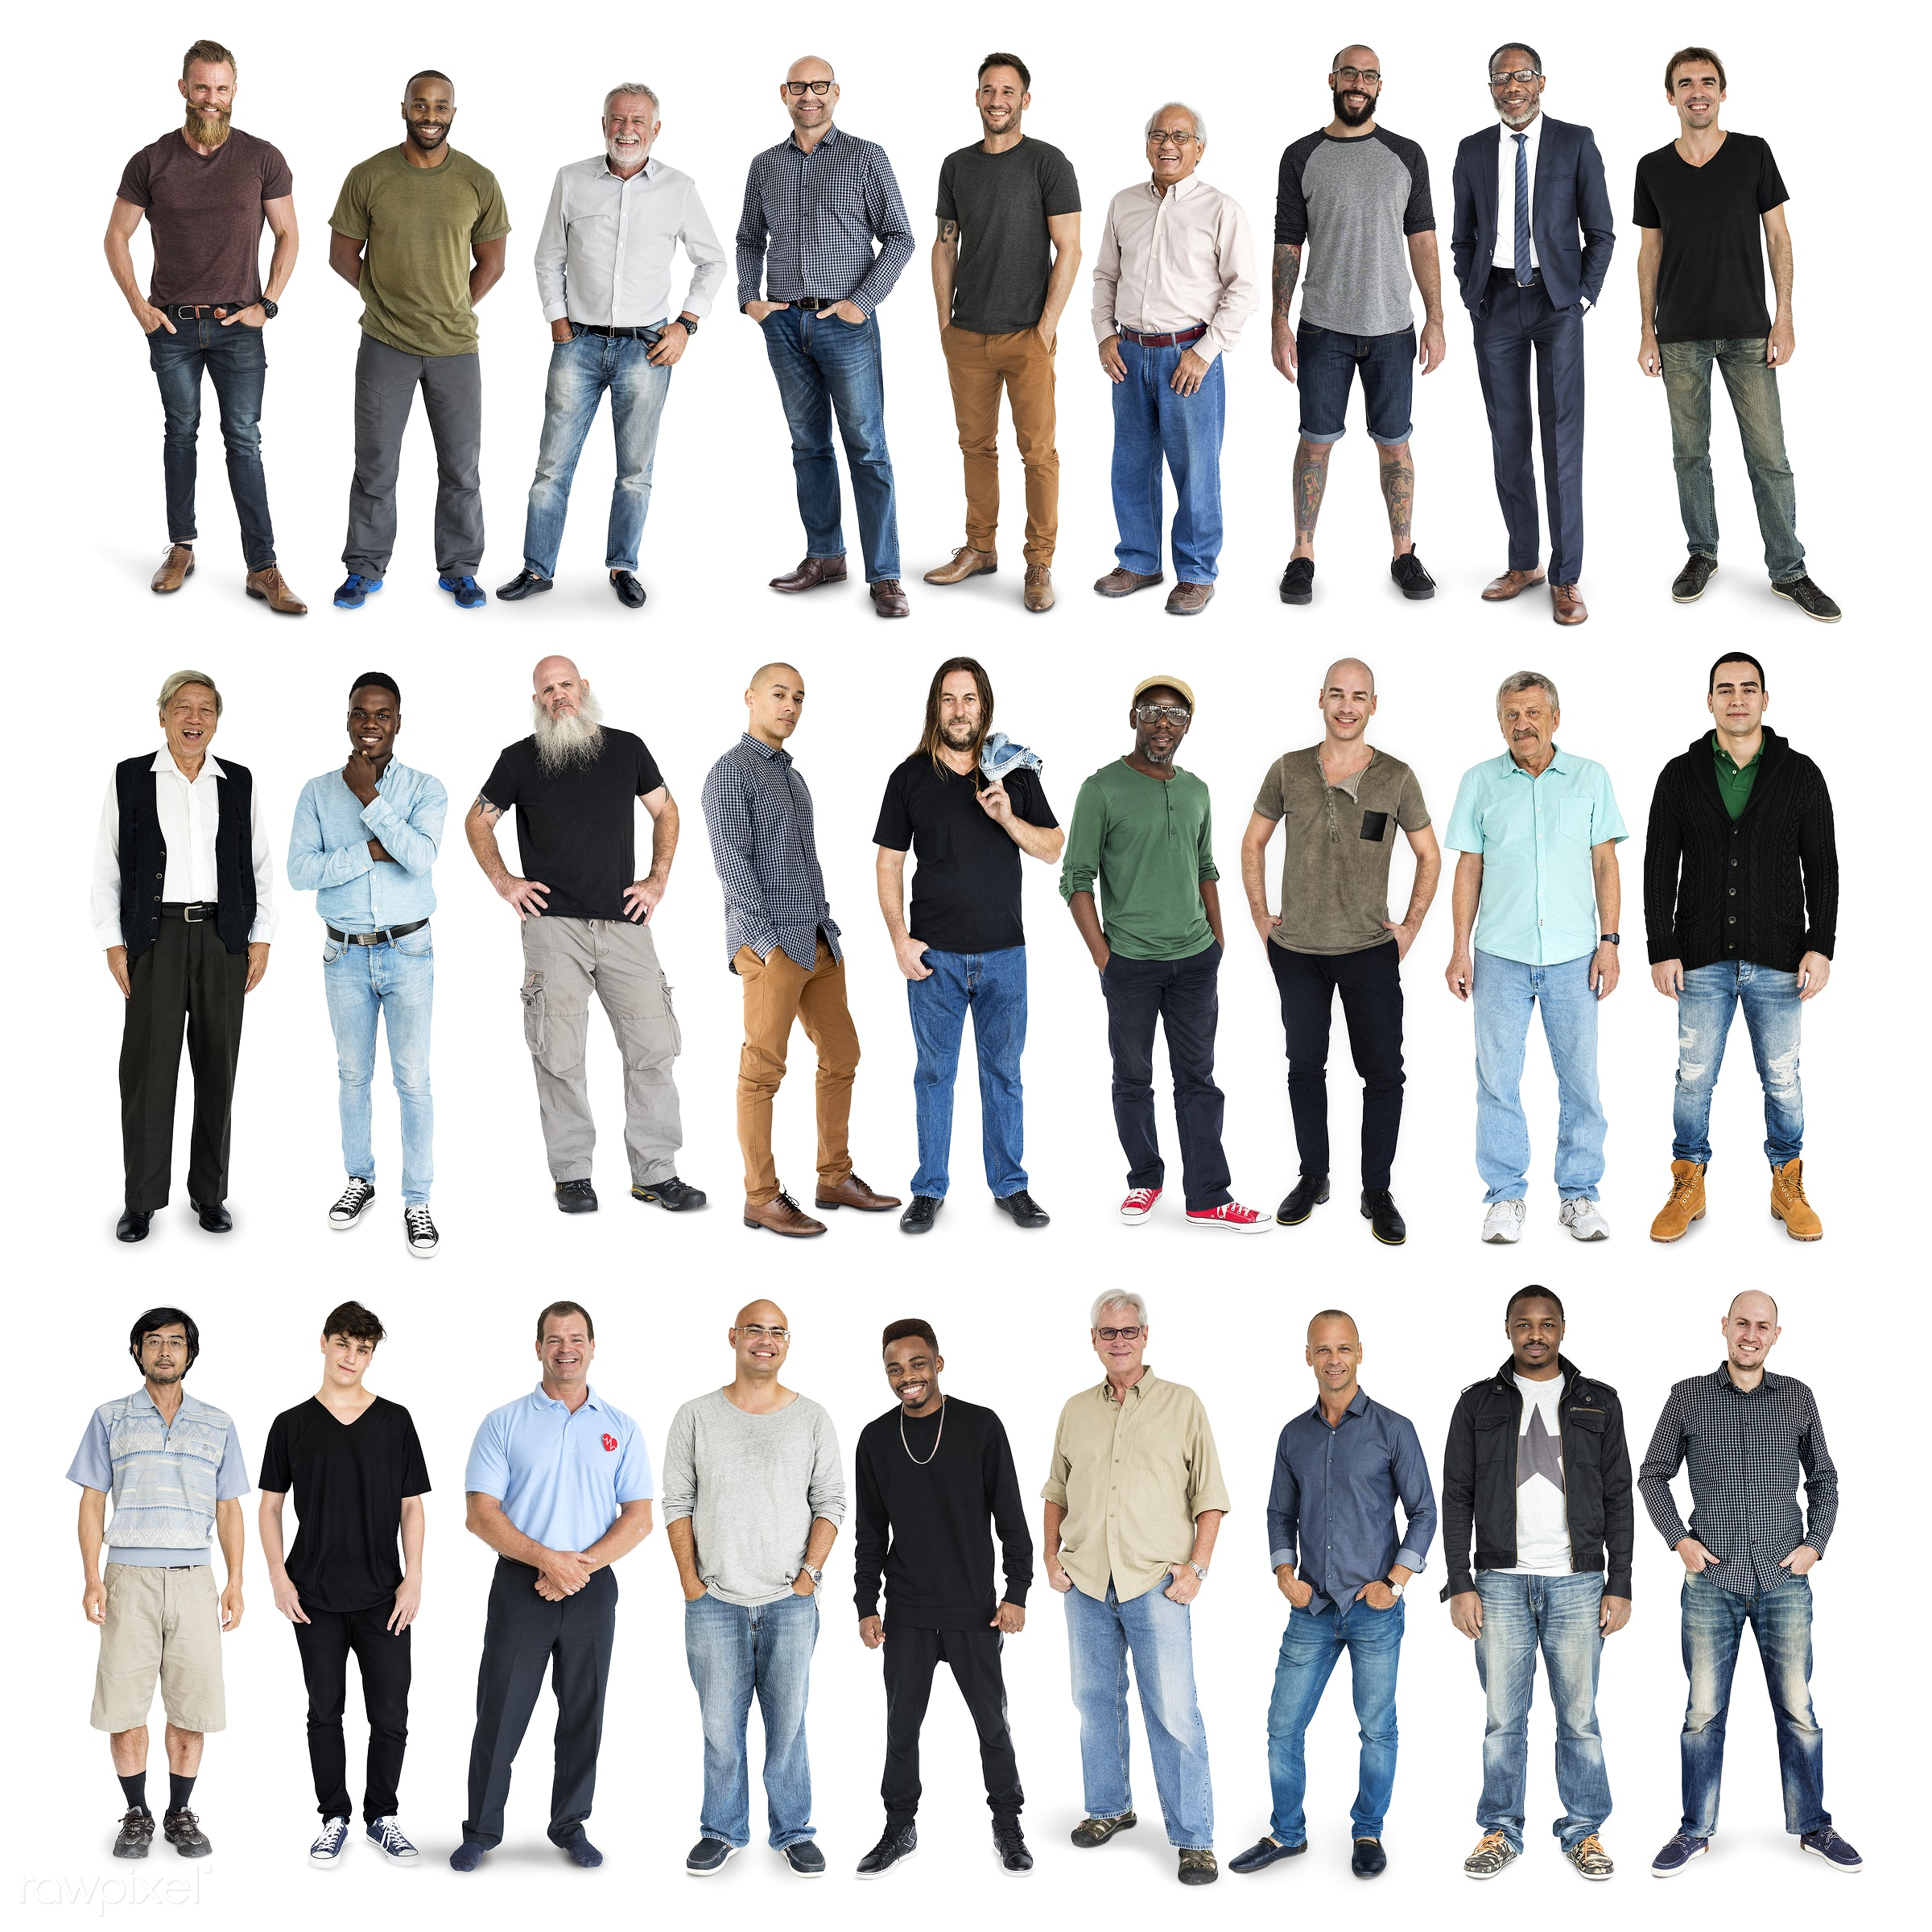 Diverse people set - gentlemen, studio, person, diverse, set, retired, little, collection, people, attraction, together,...